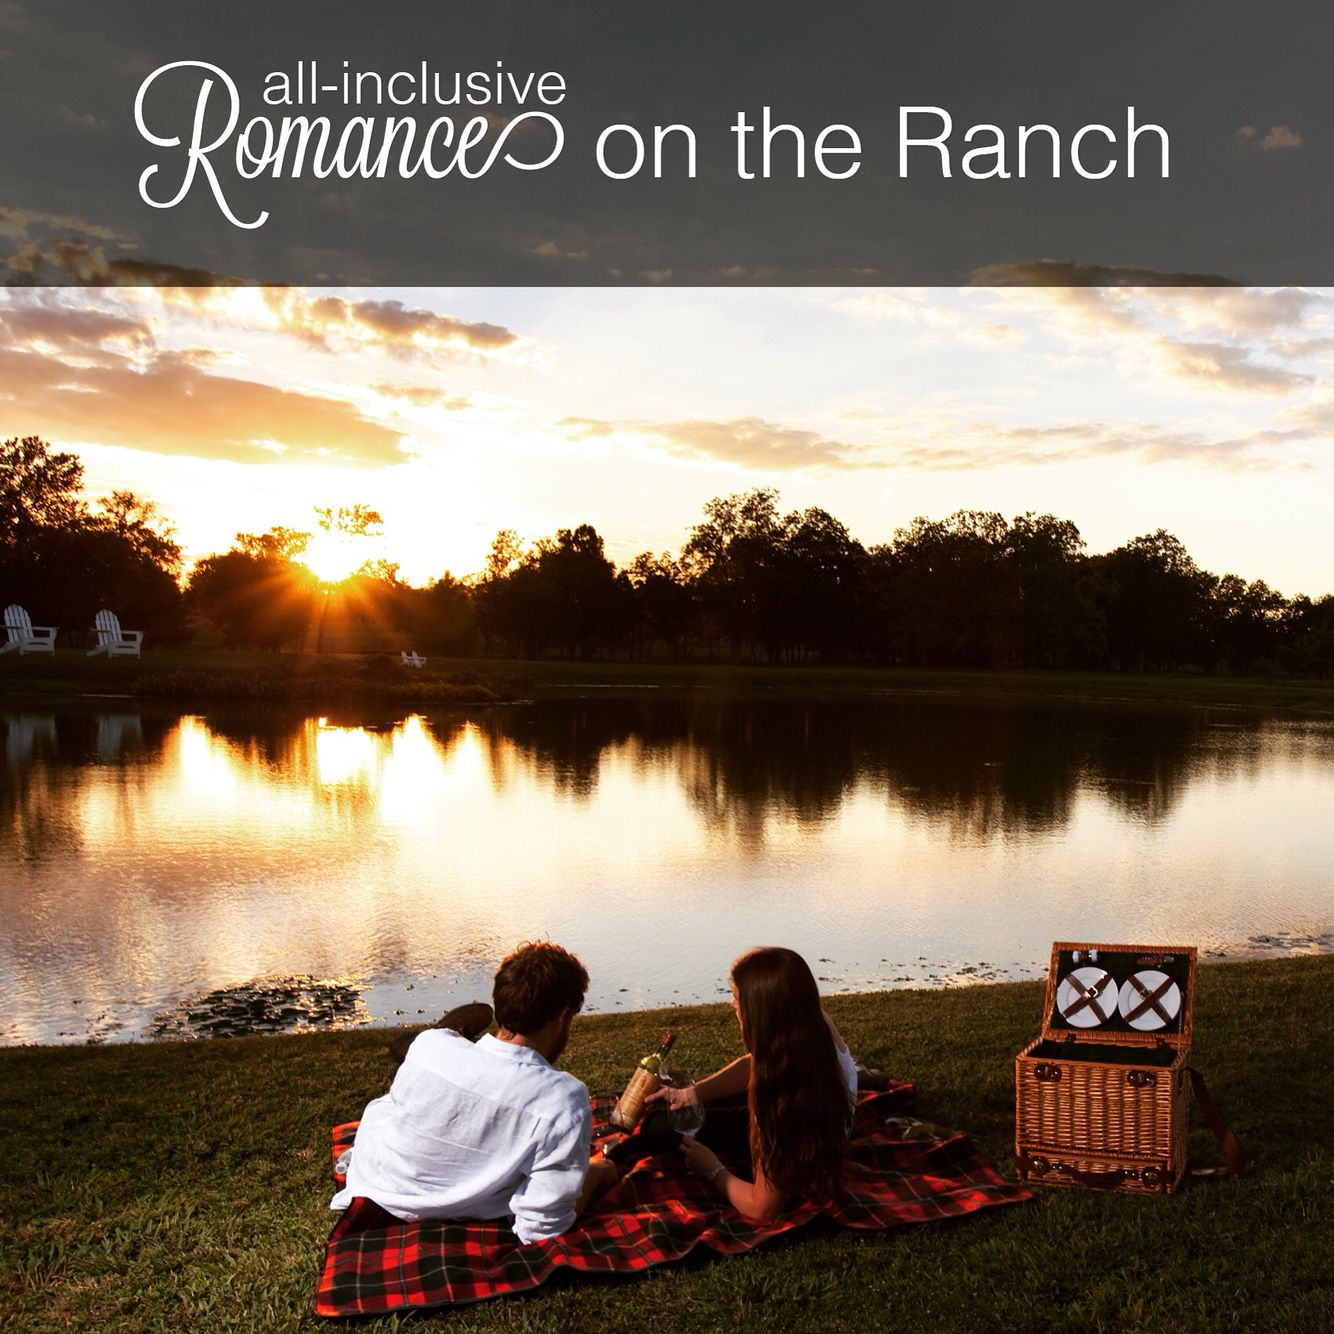 allinclusive Romance on the Ranch package Perfect for